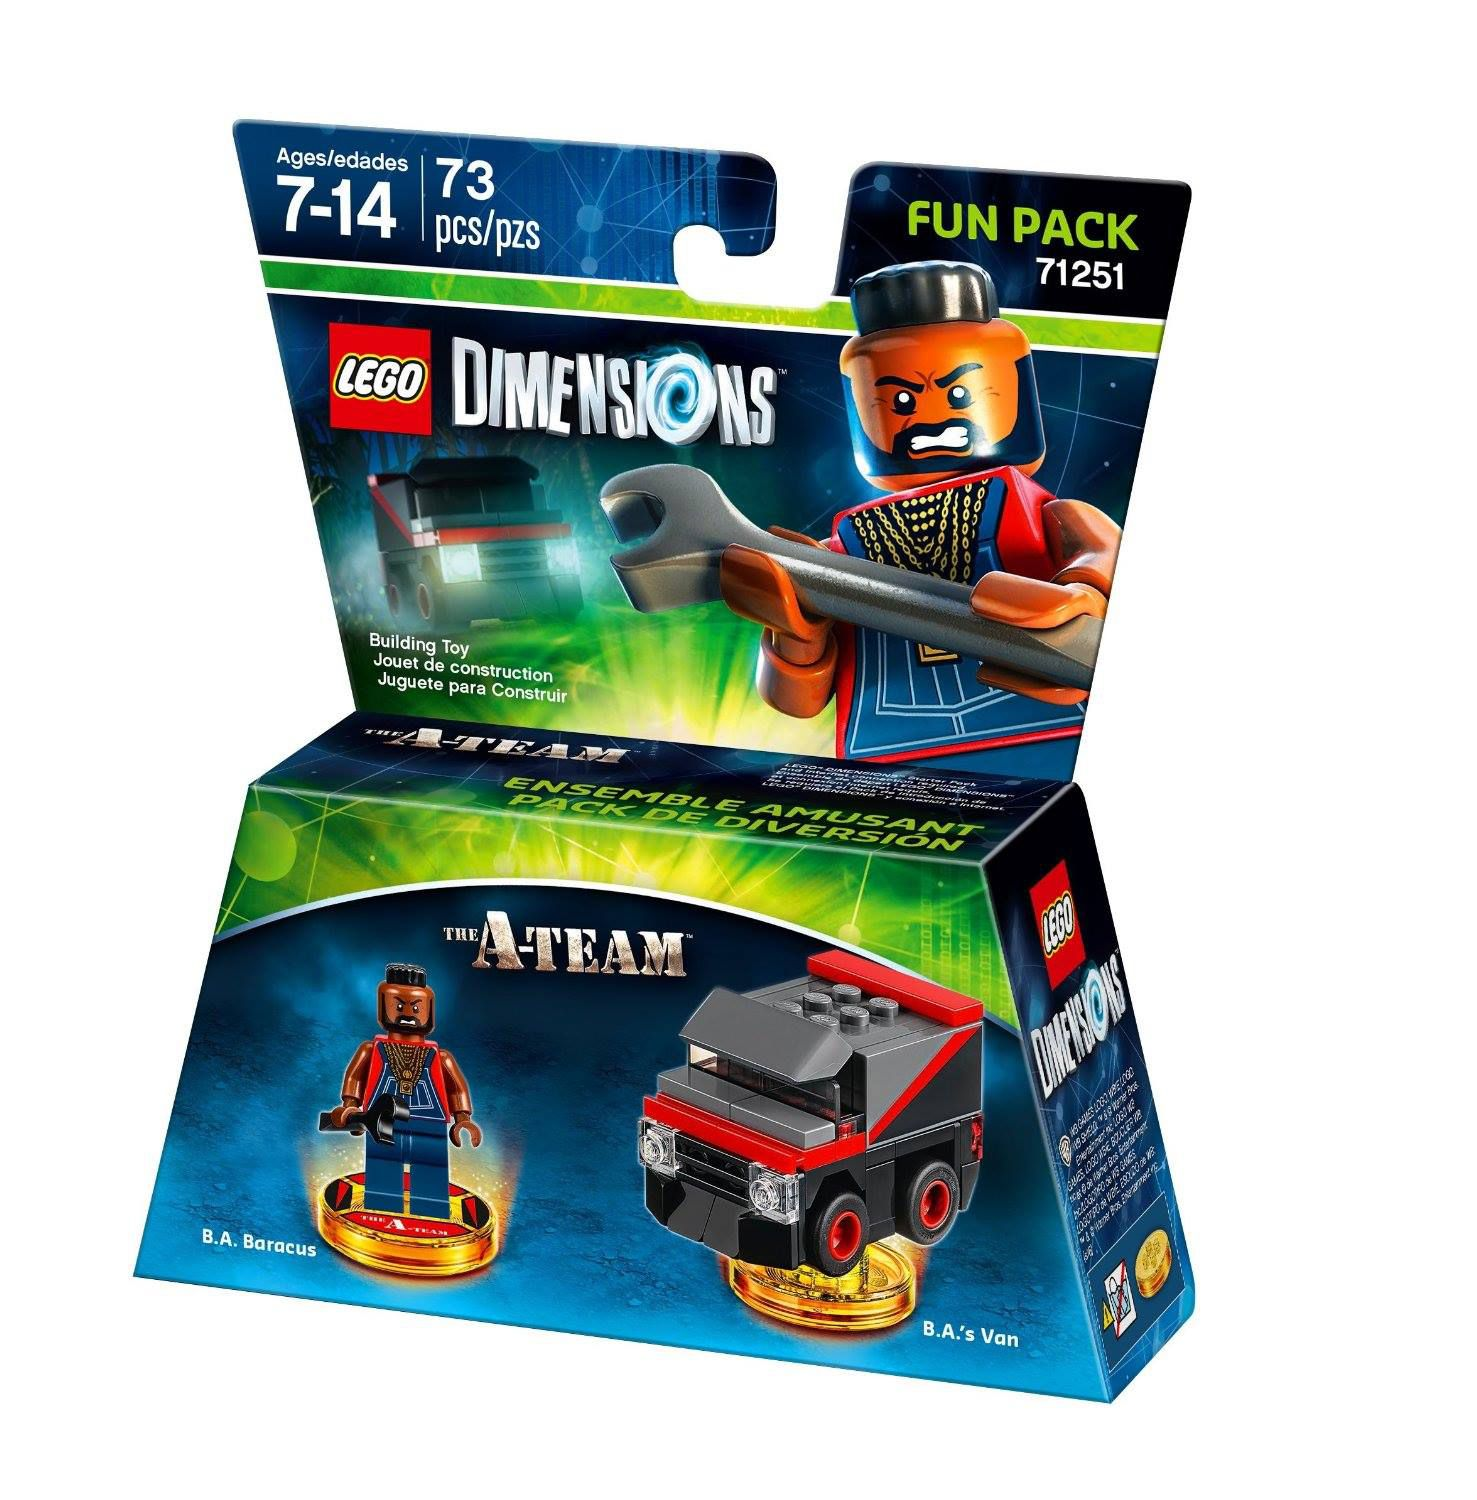 LEGO Dimensions 71251 Fun Pack A-Team LEGO_DIMENSIONS_71251_A-Team-01.jpg